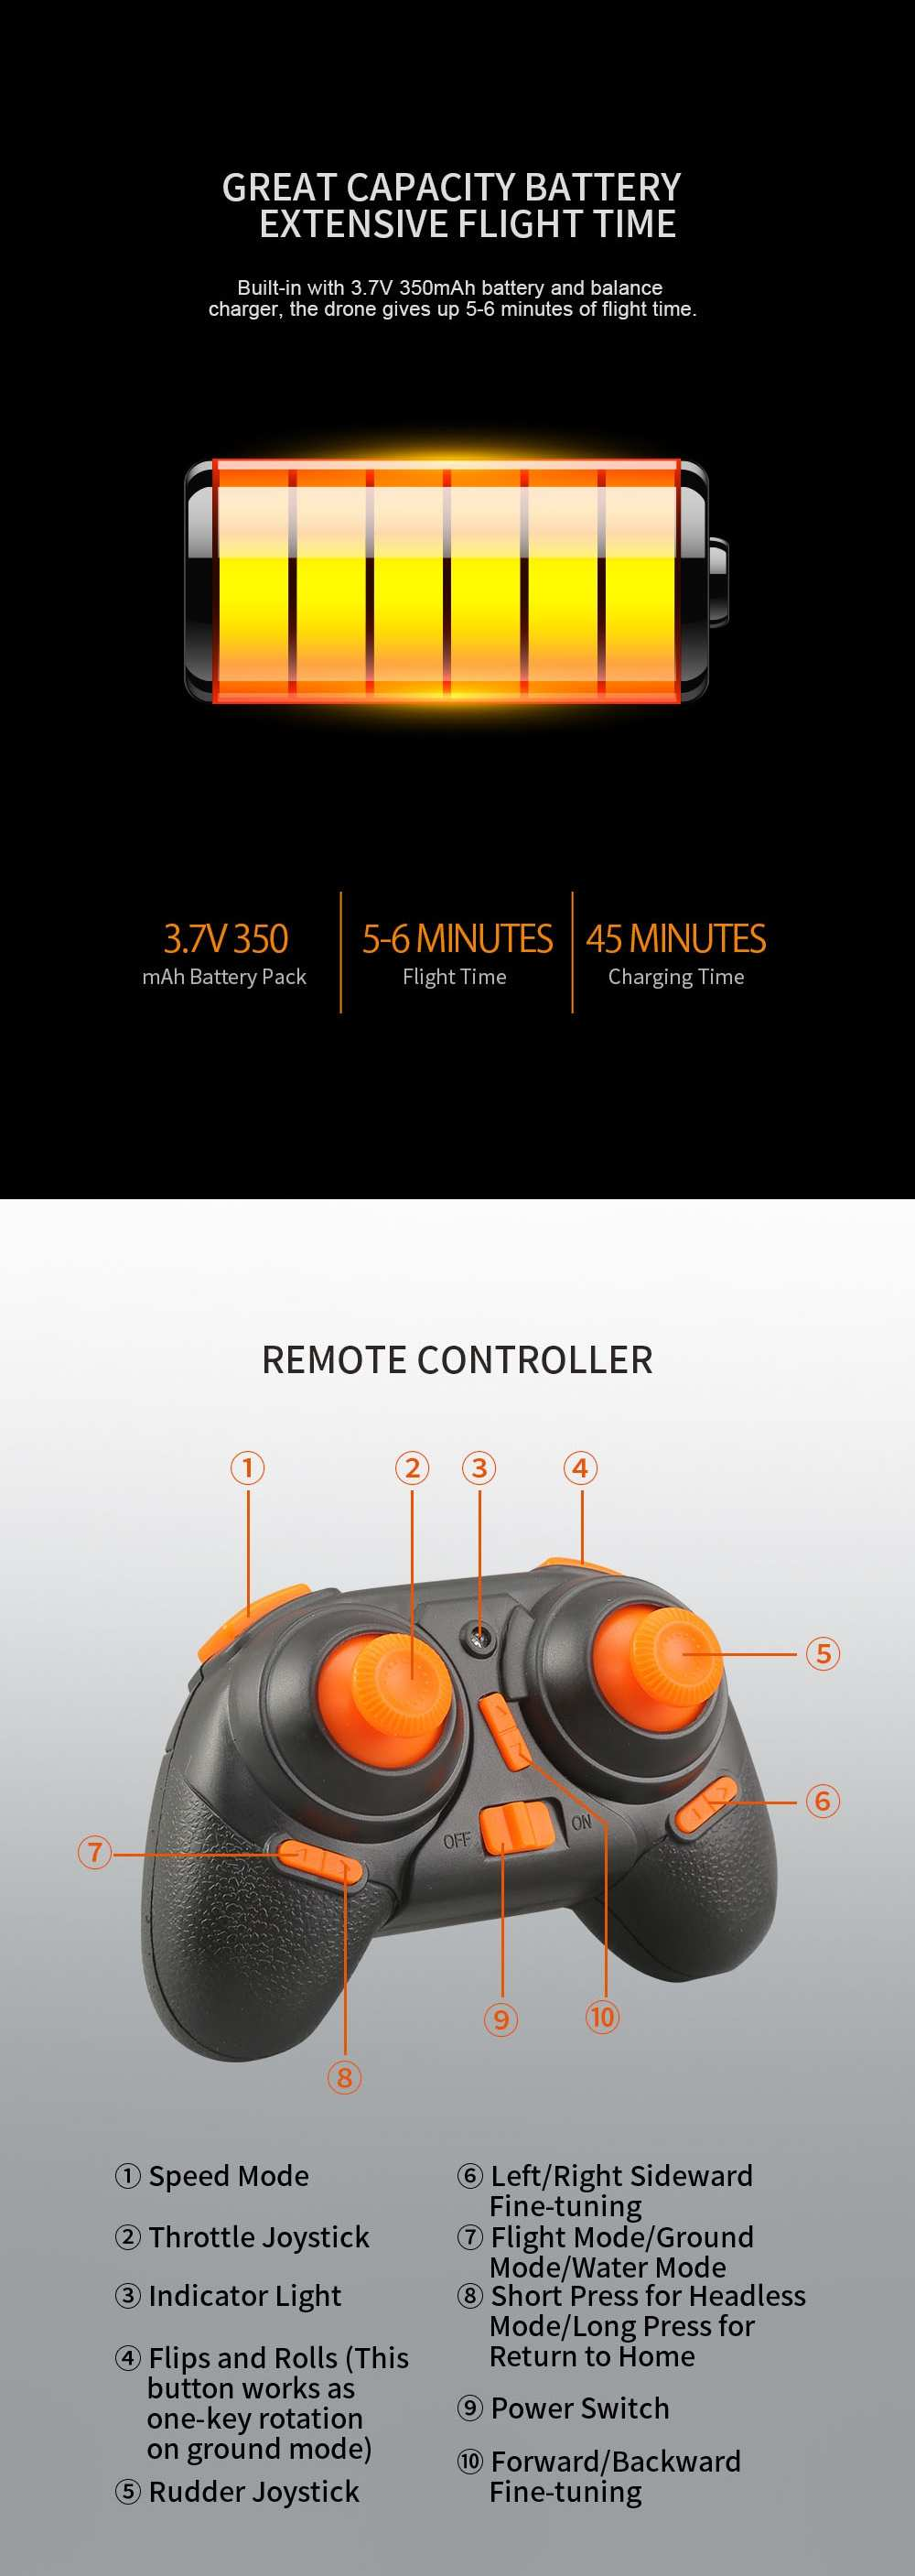 Explanation of the 3-in-1 Drones Remote Control